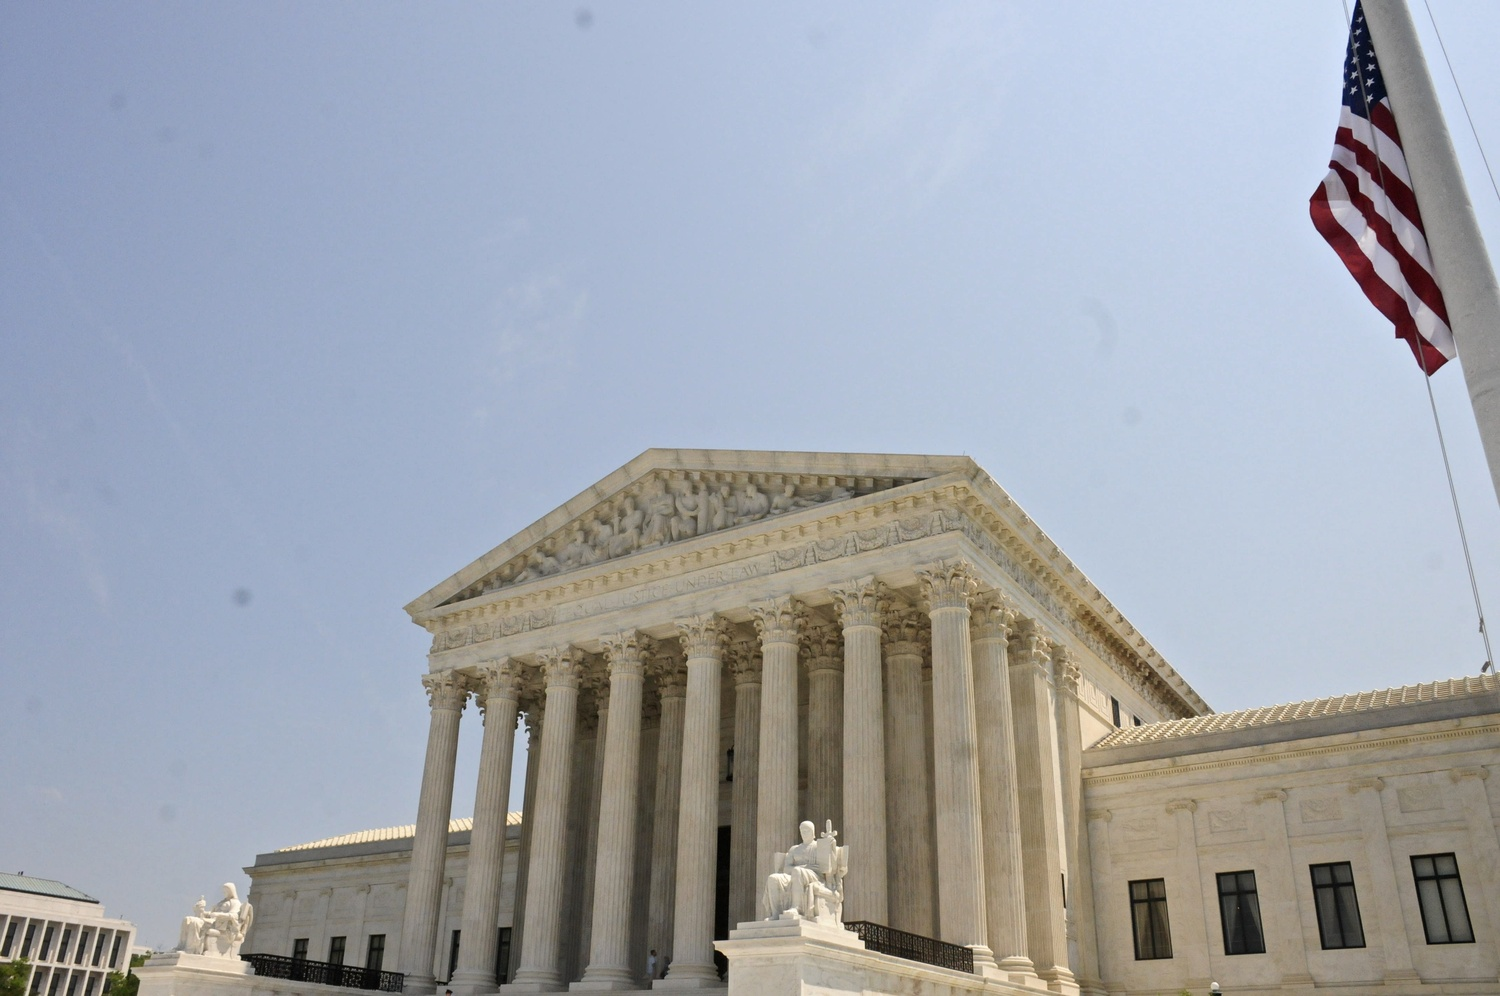 The United States Supreme Court has ruled on affirmative action cases in the past few decades.